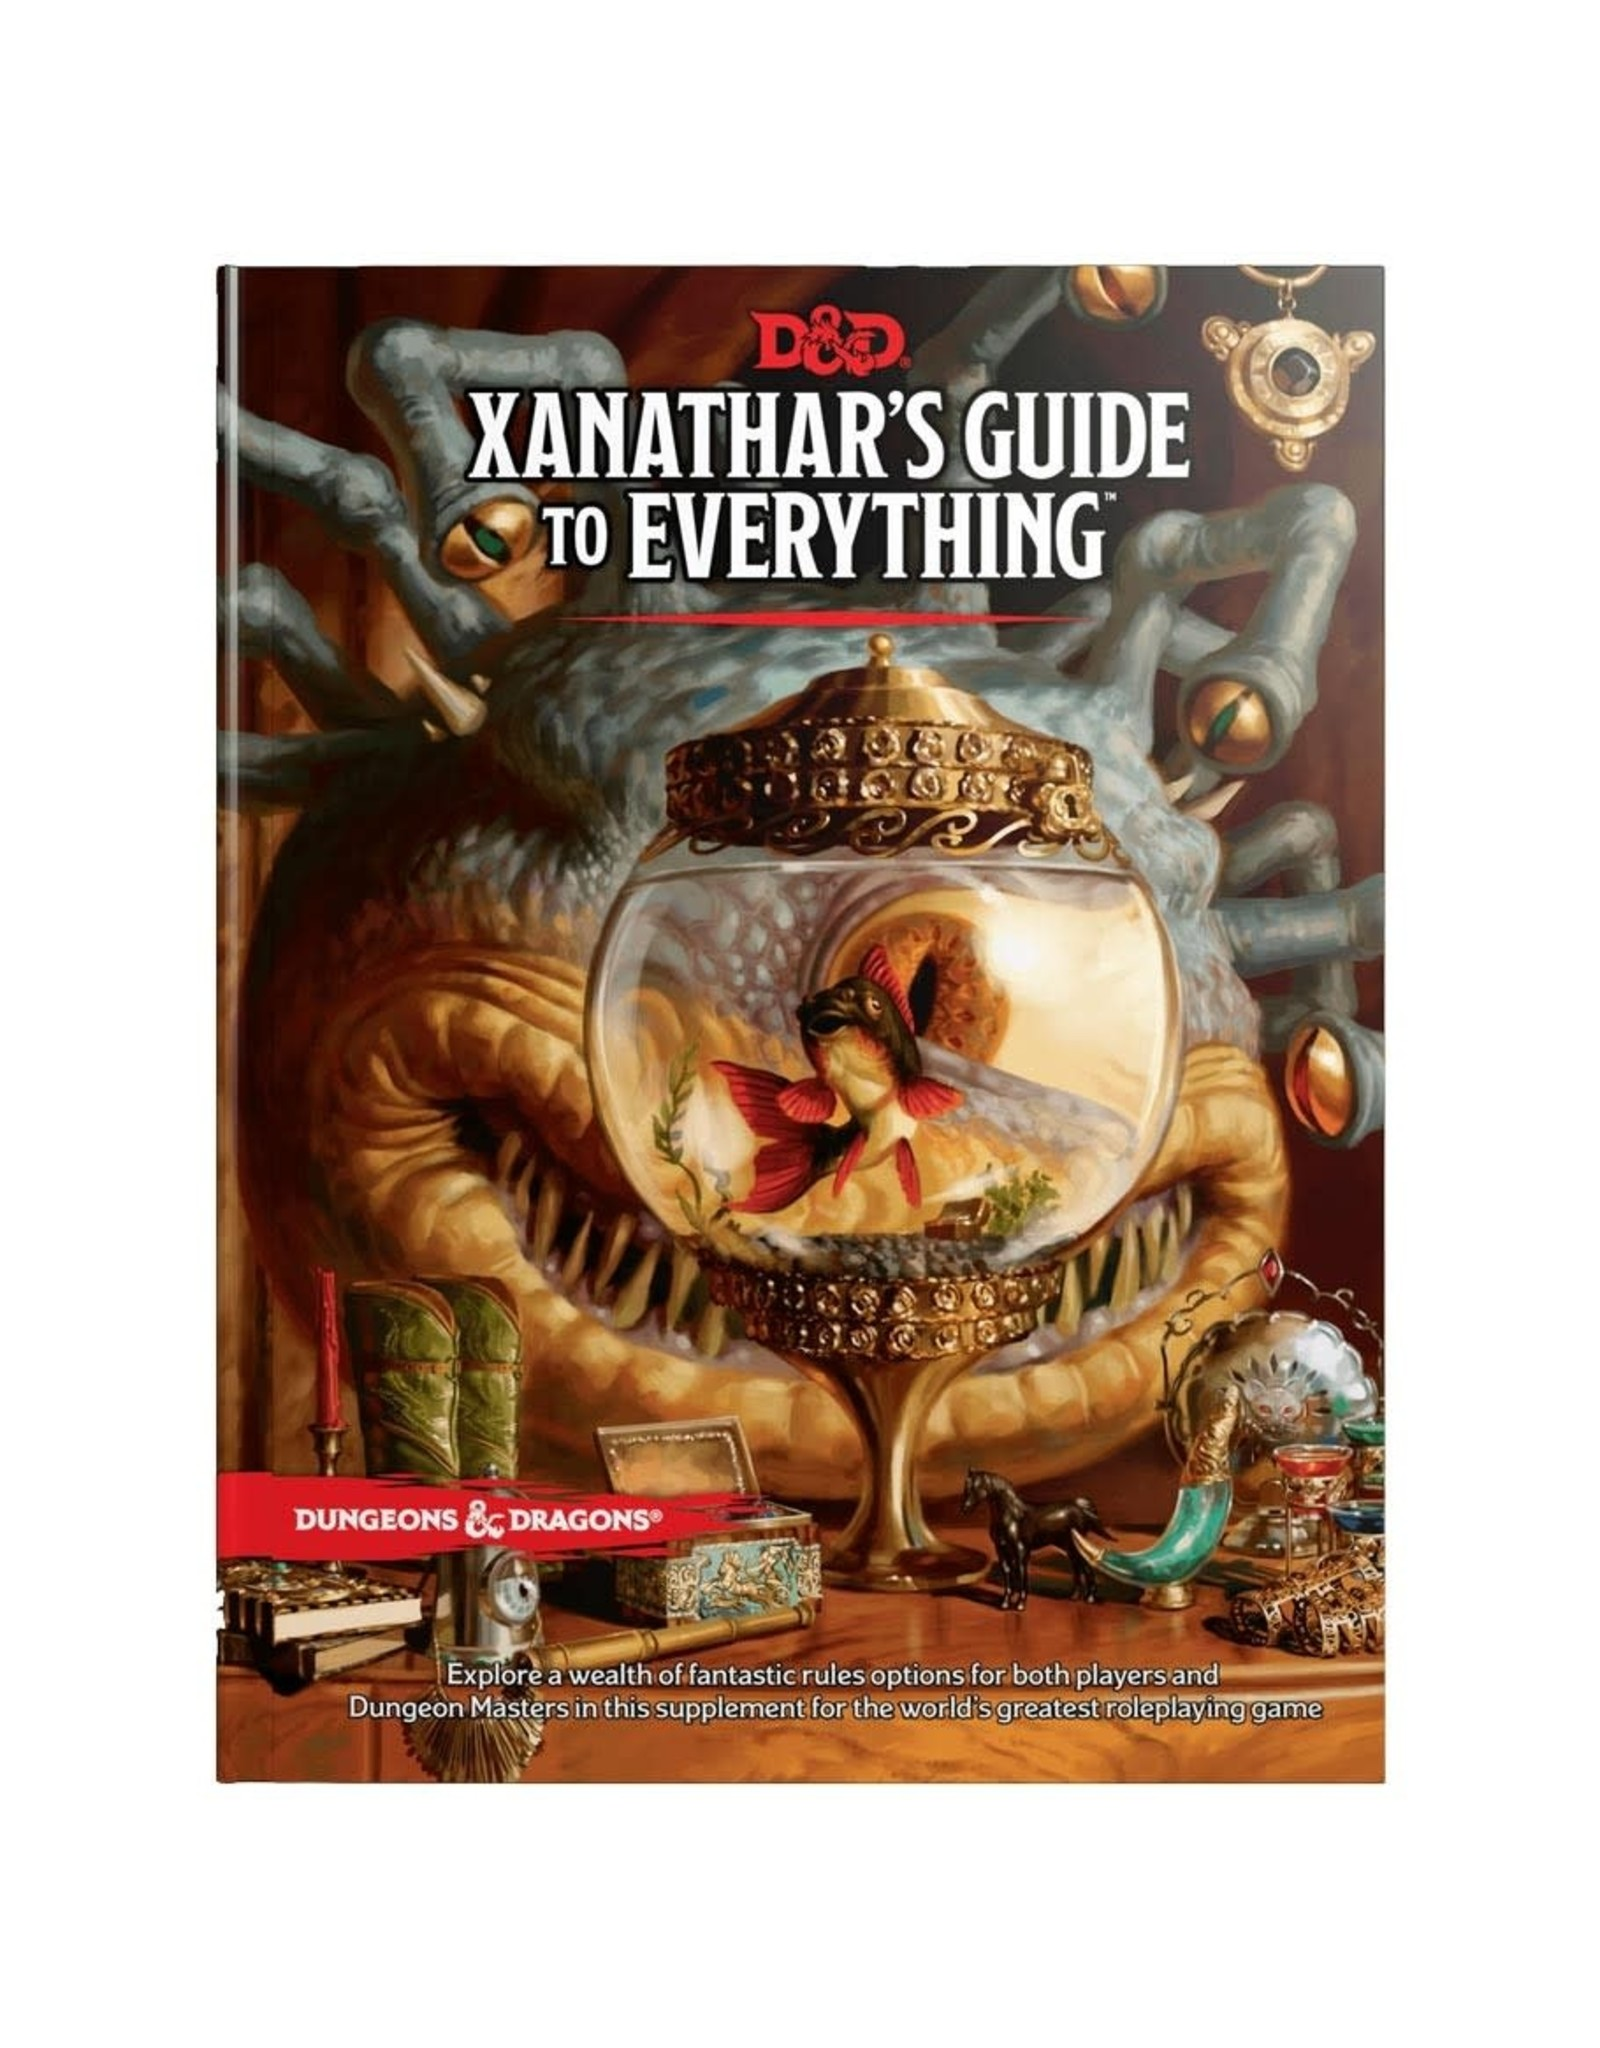 Dungeons & Dragons D&D 5th: Xanathars Guide to Everything